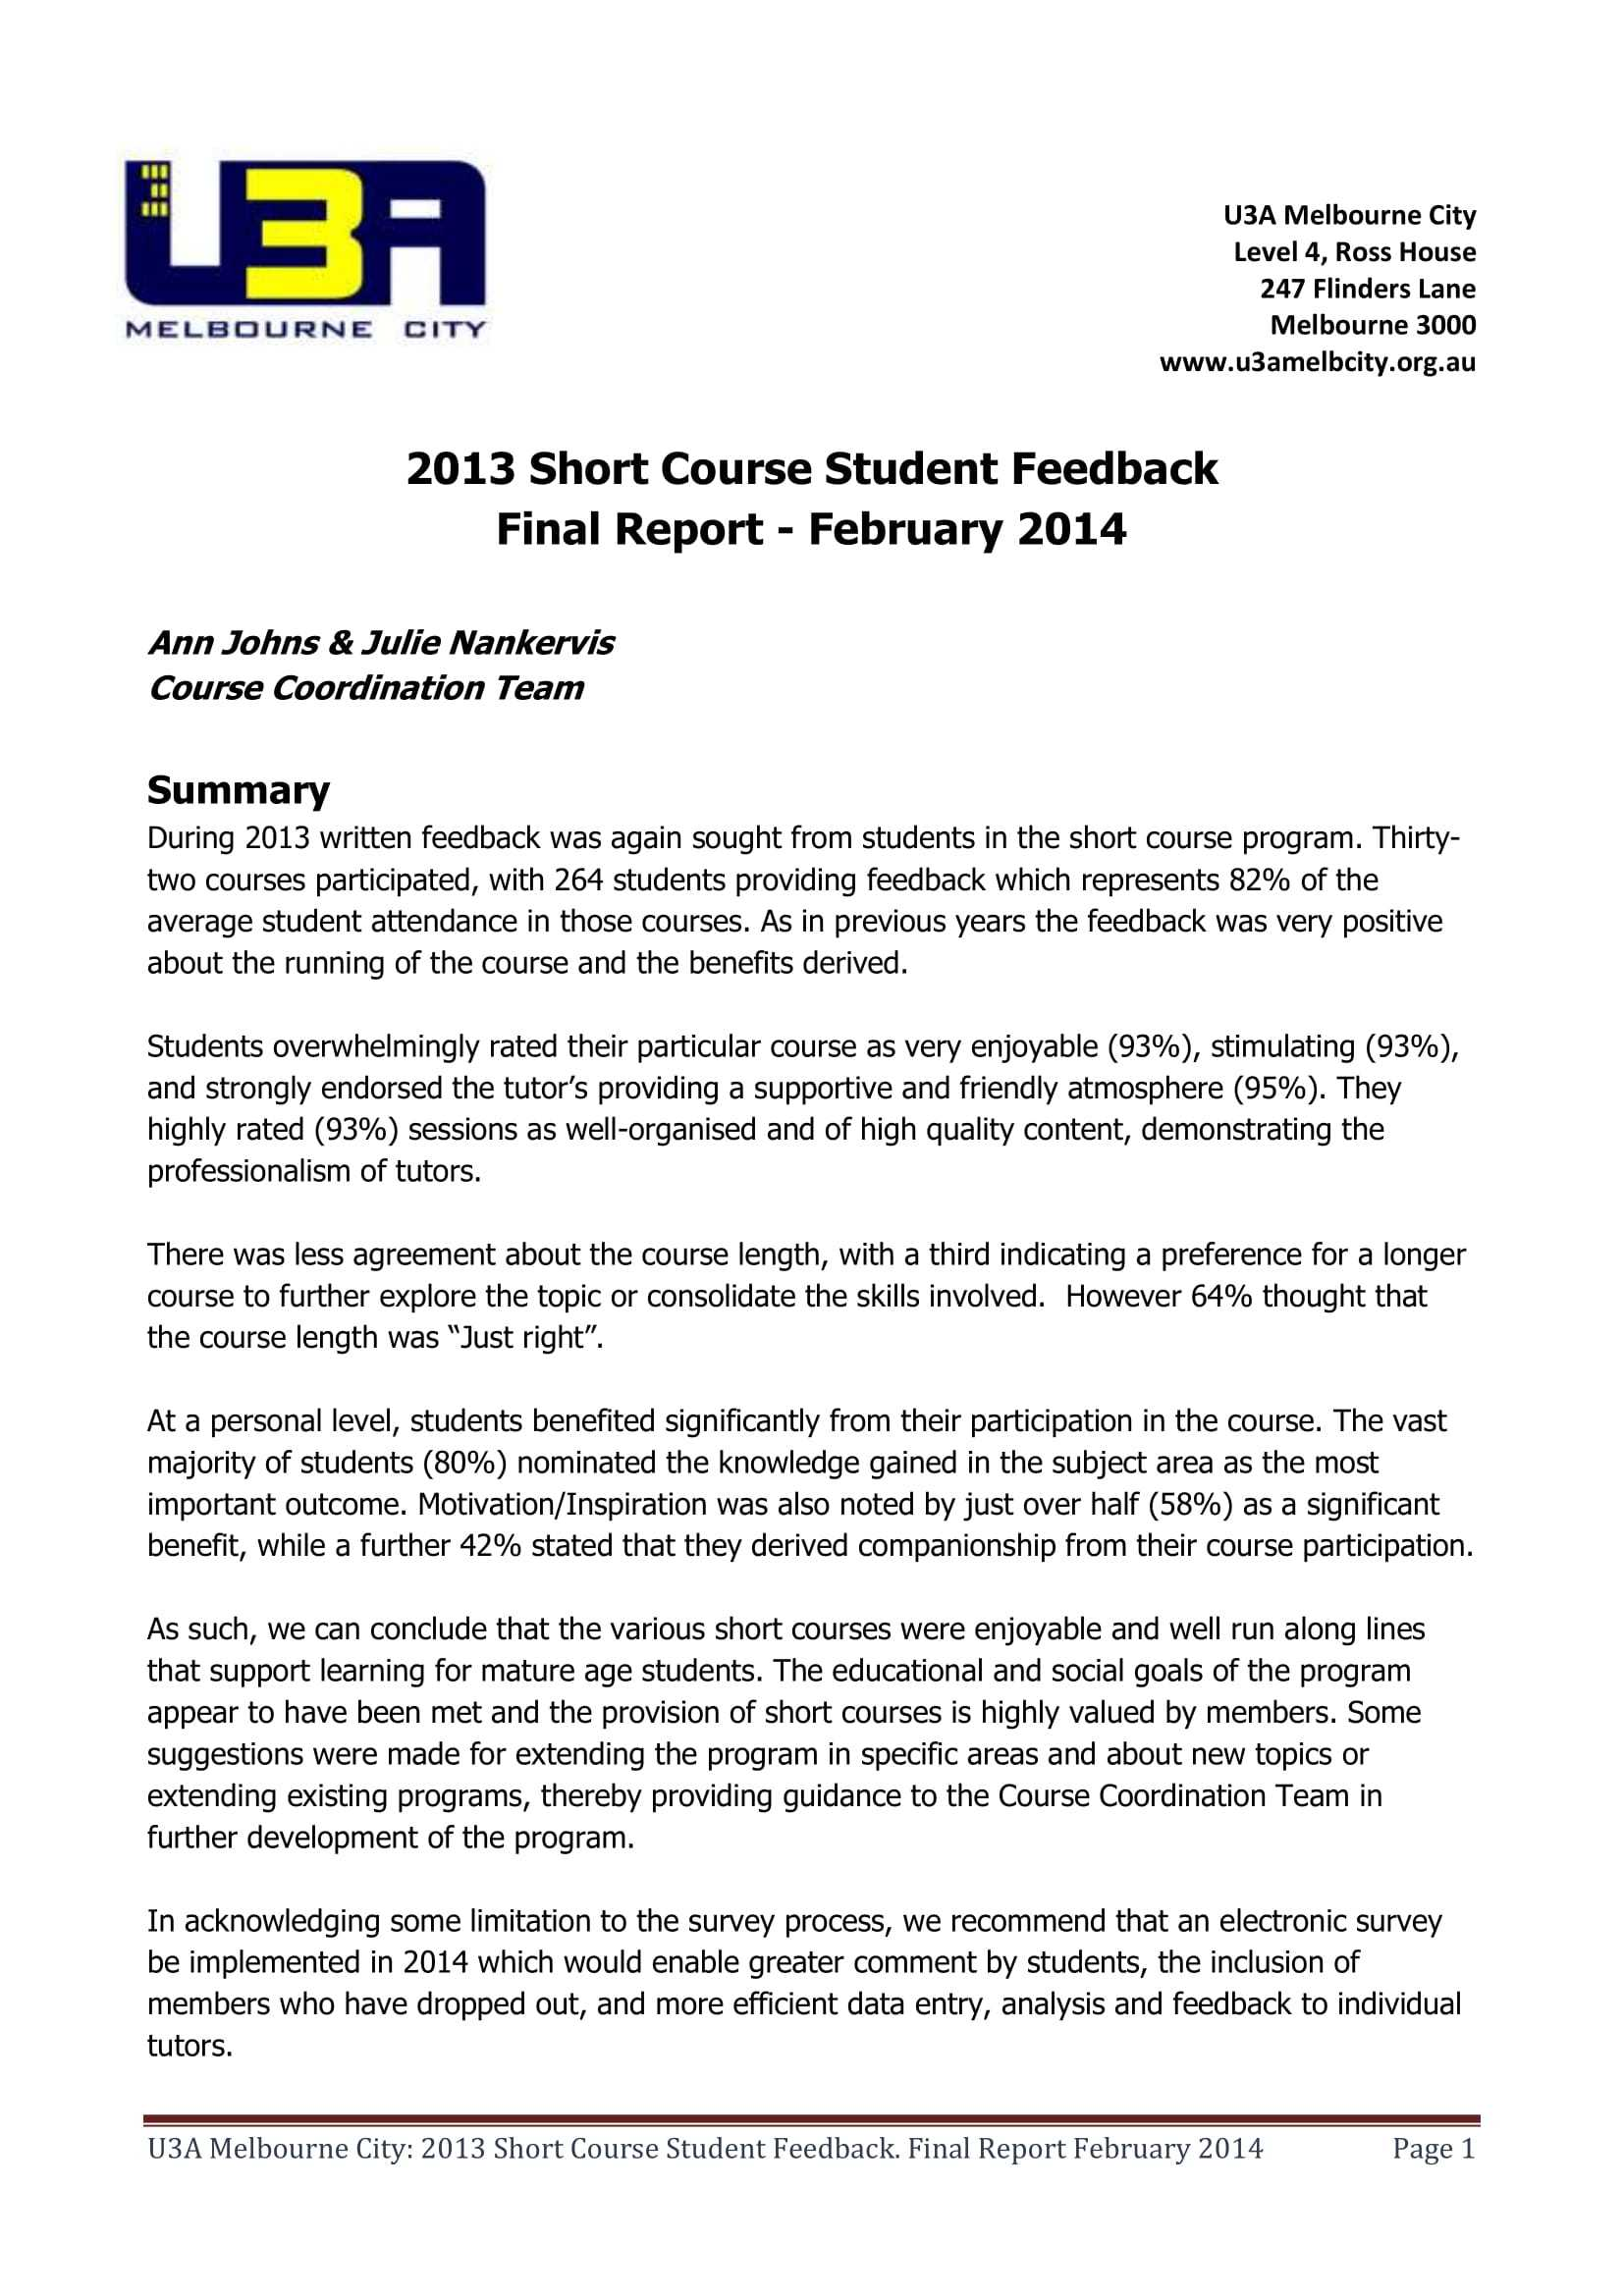 9+ Report Writing Example For Students - Pdf, Doc | Examples With Regard To Pupil Report Template